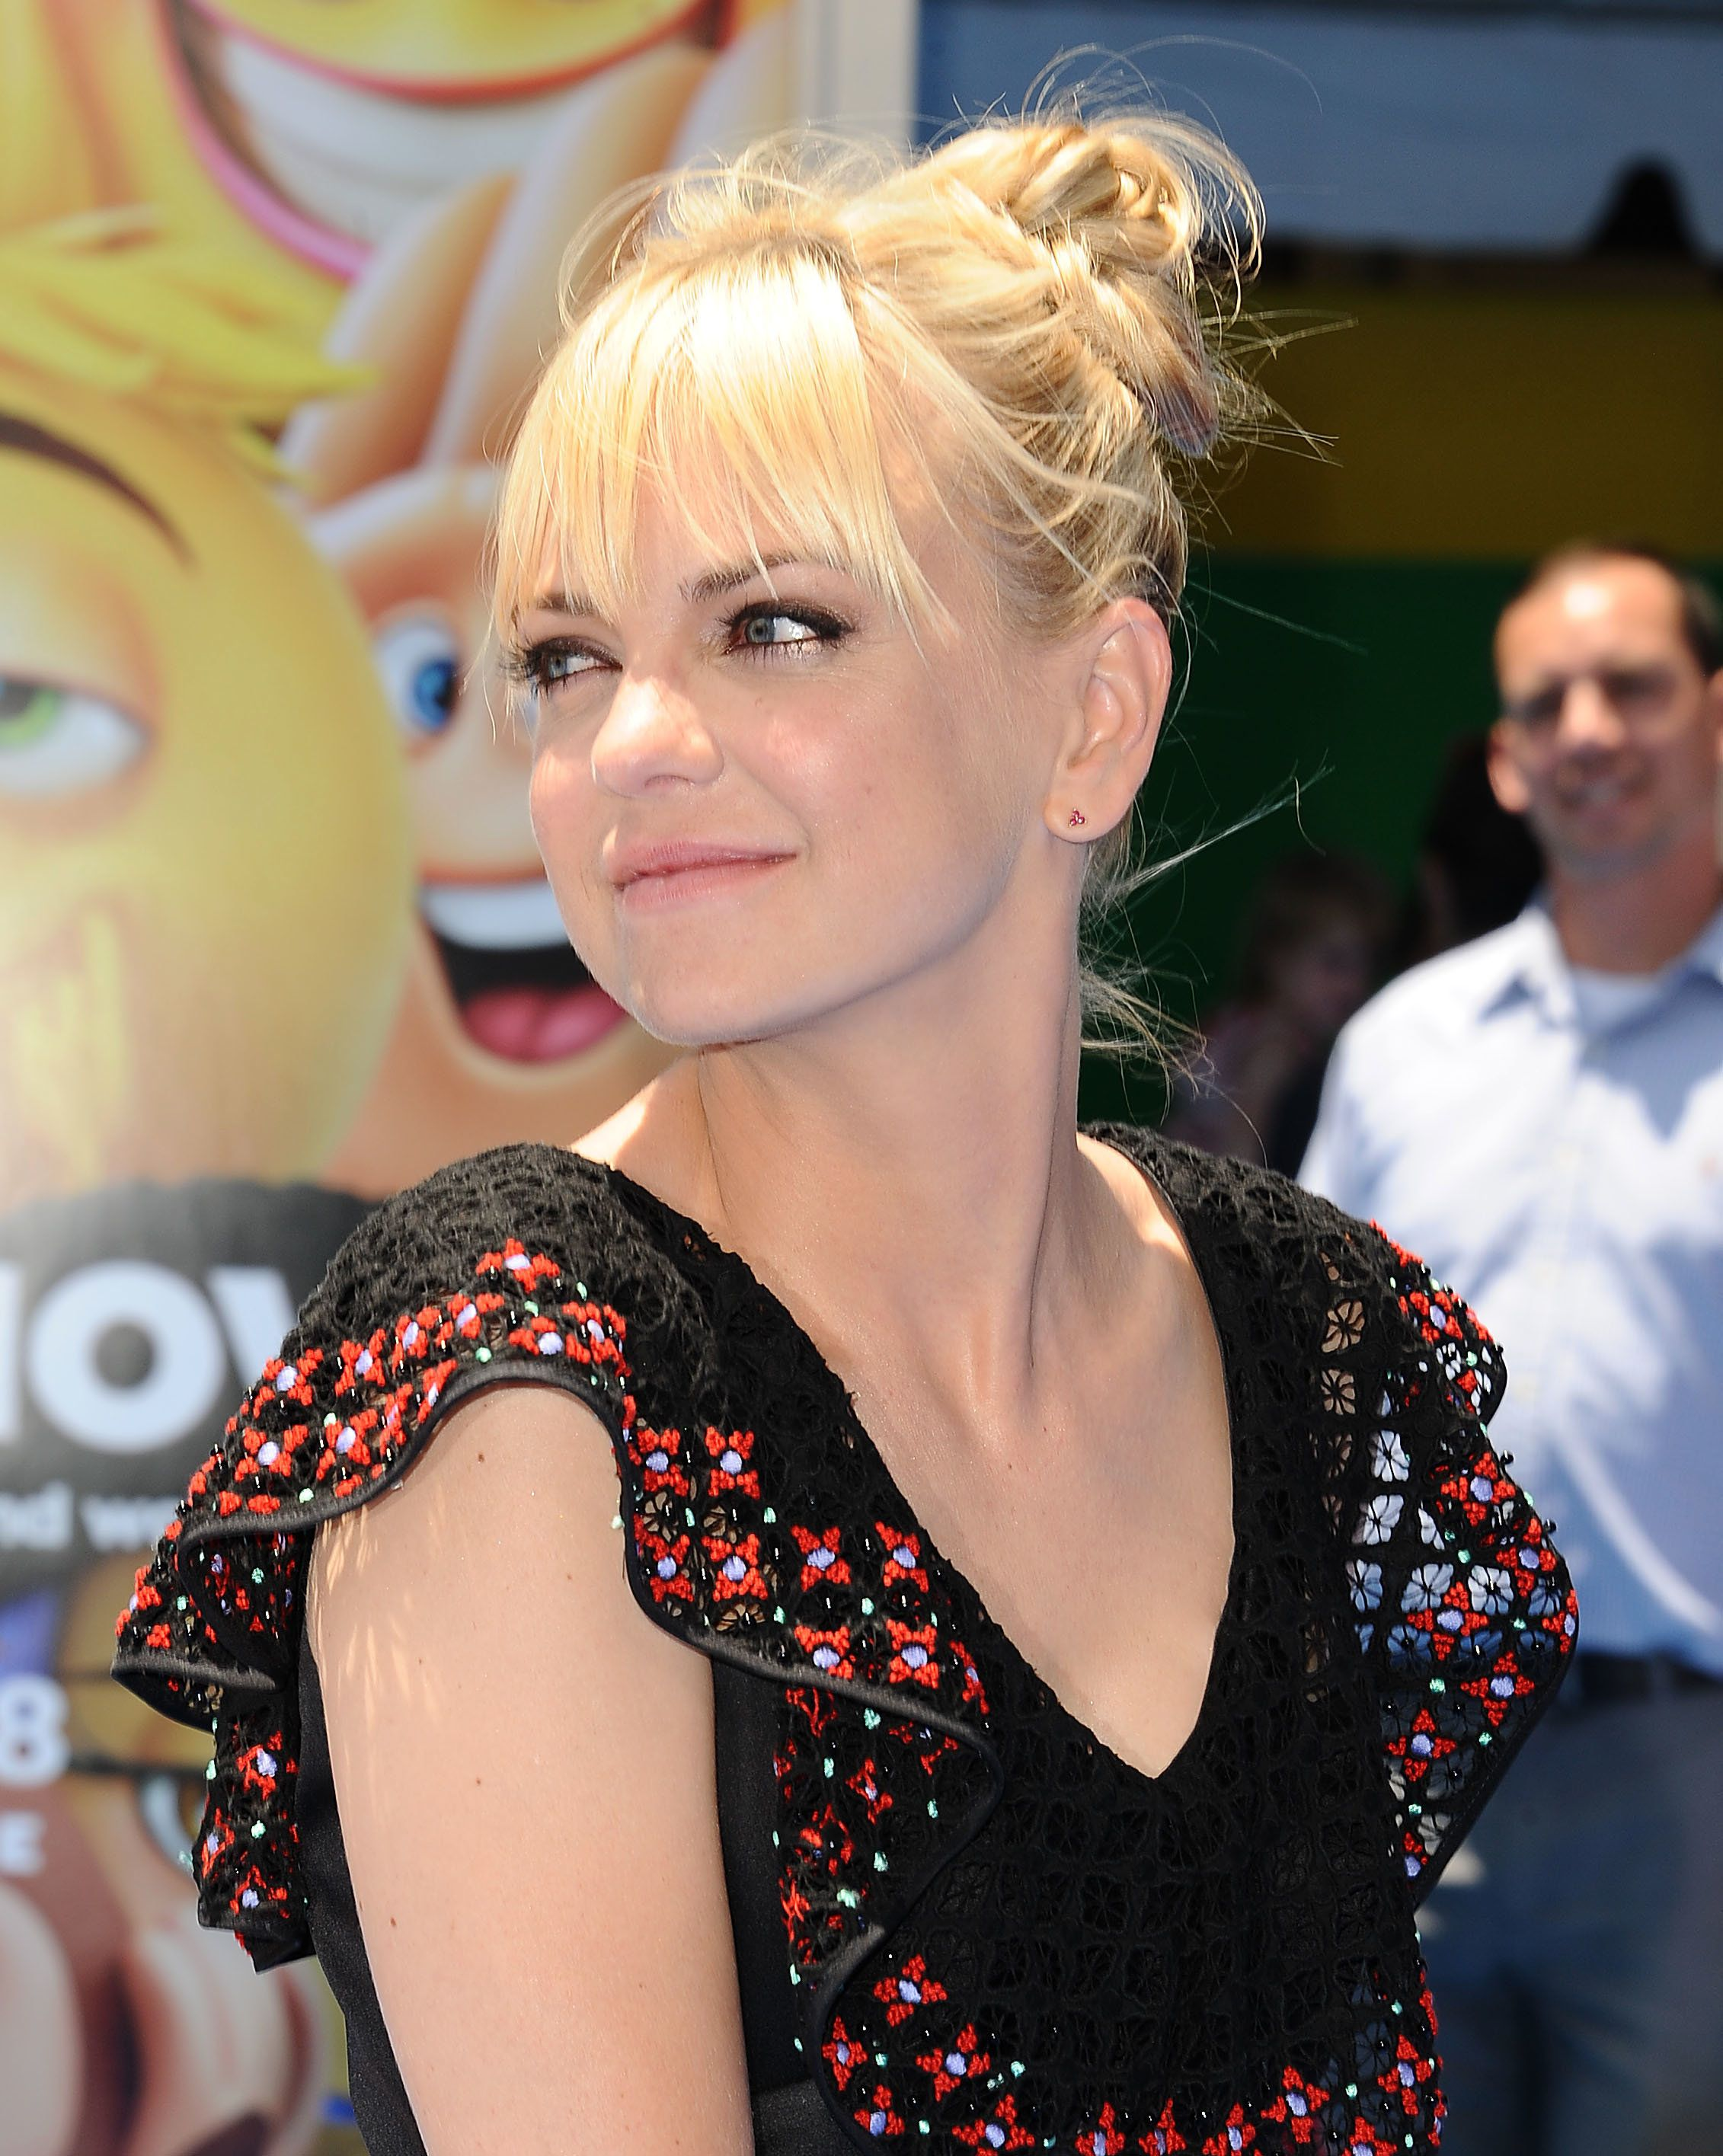 Anna Faris Thanks Fans In First Comments Since Chris Pratt Split